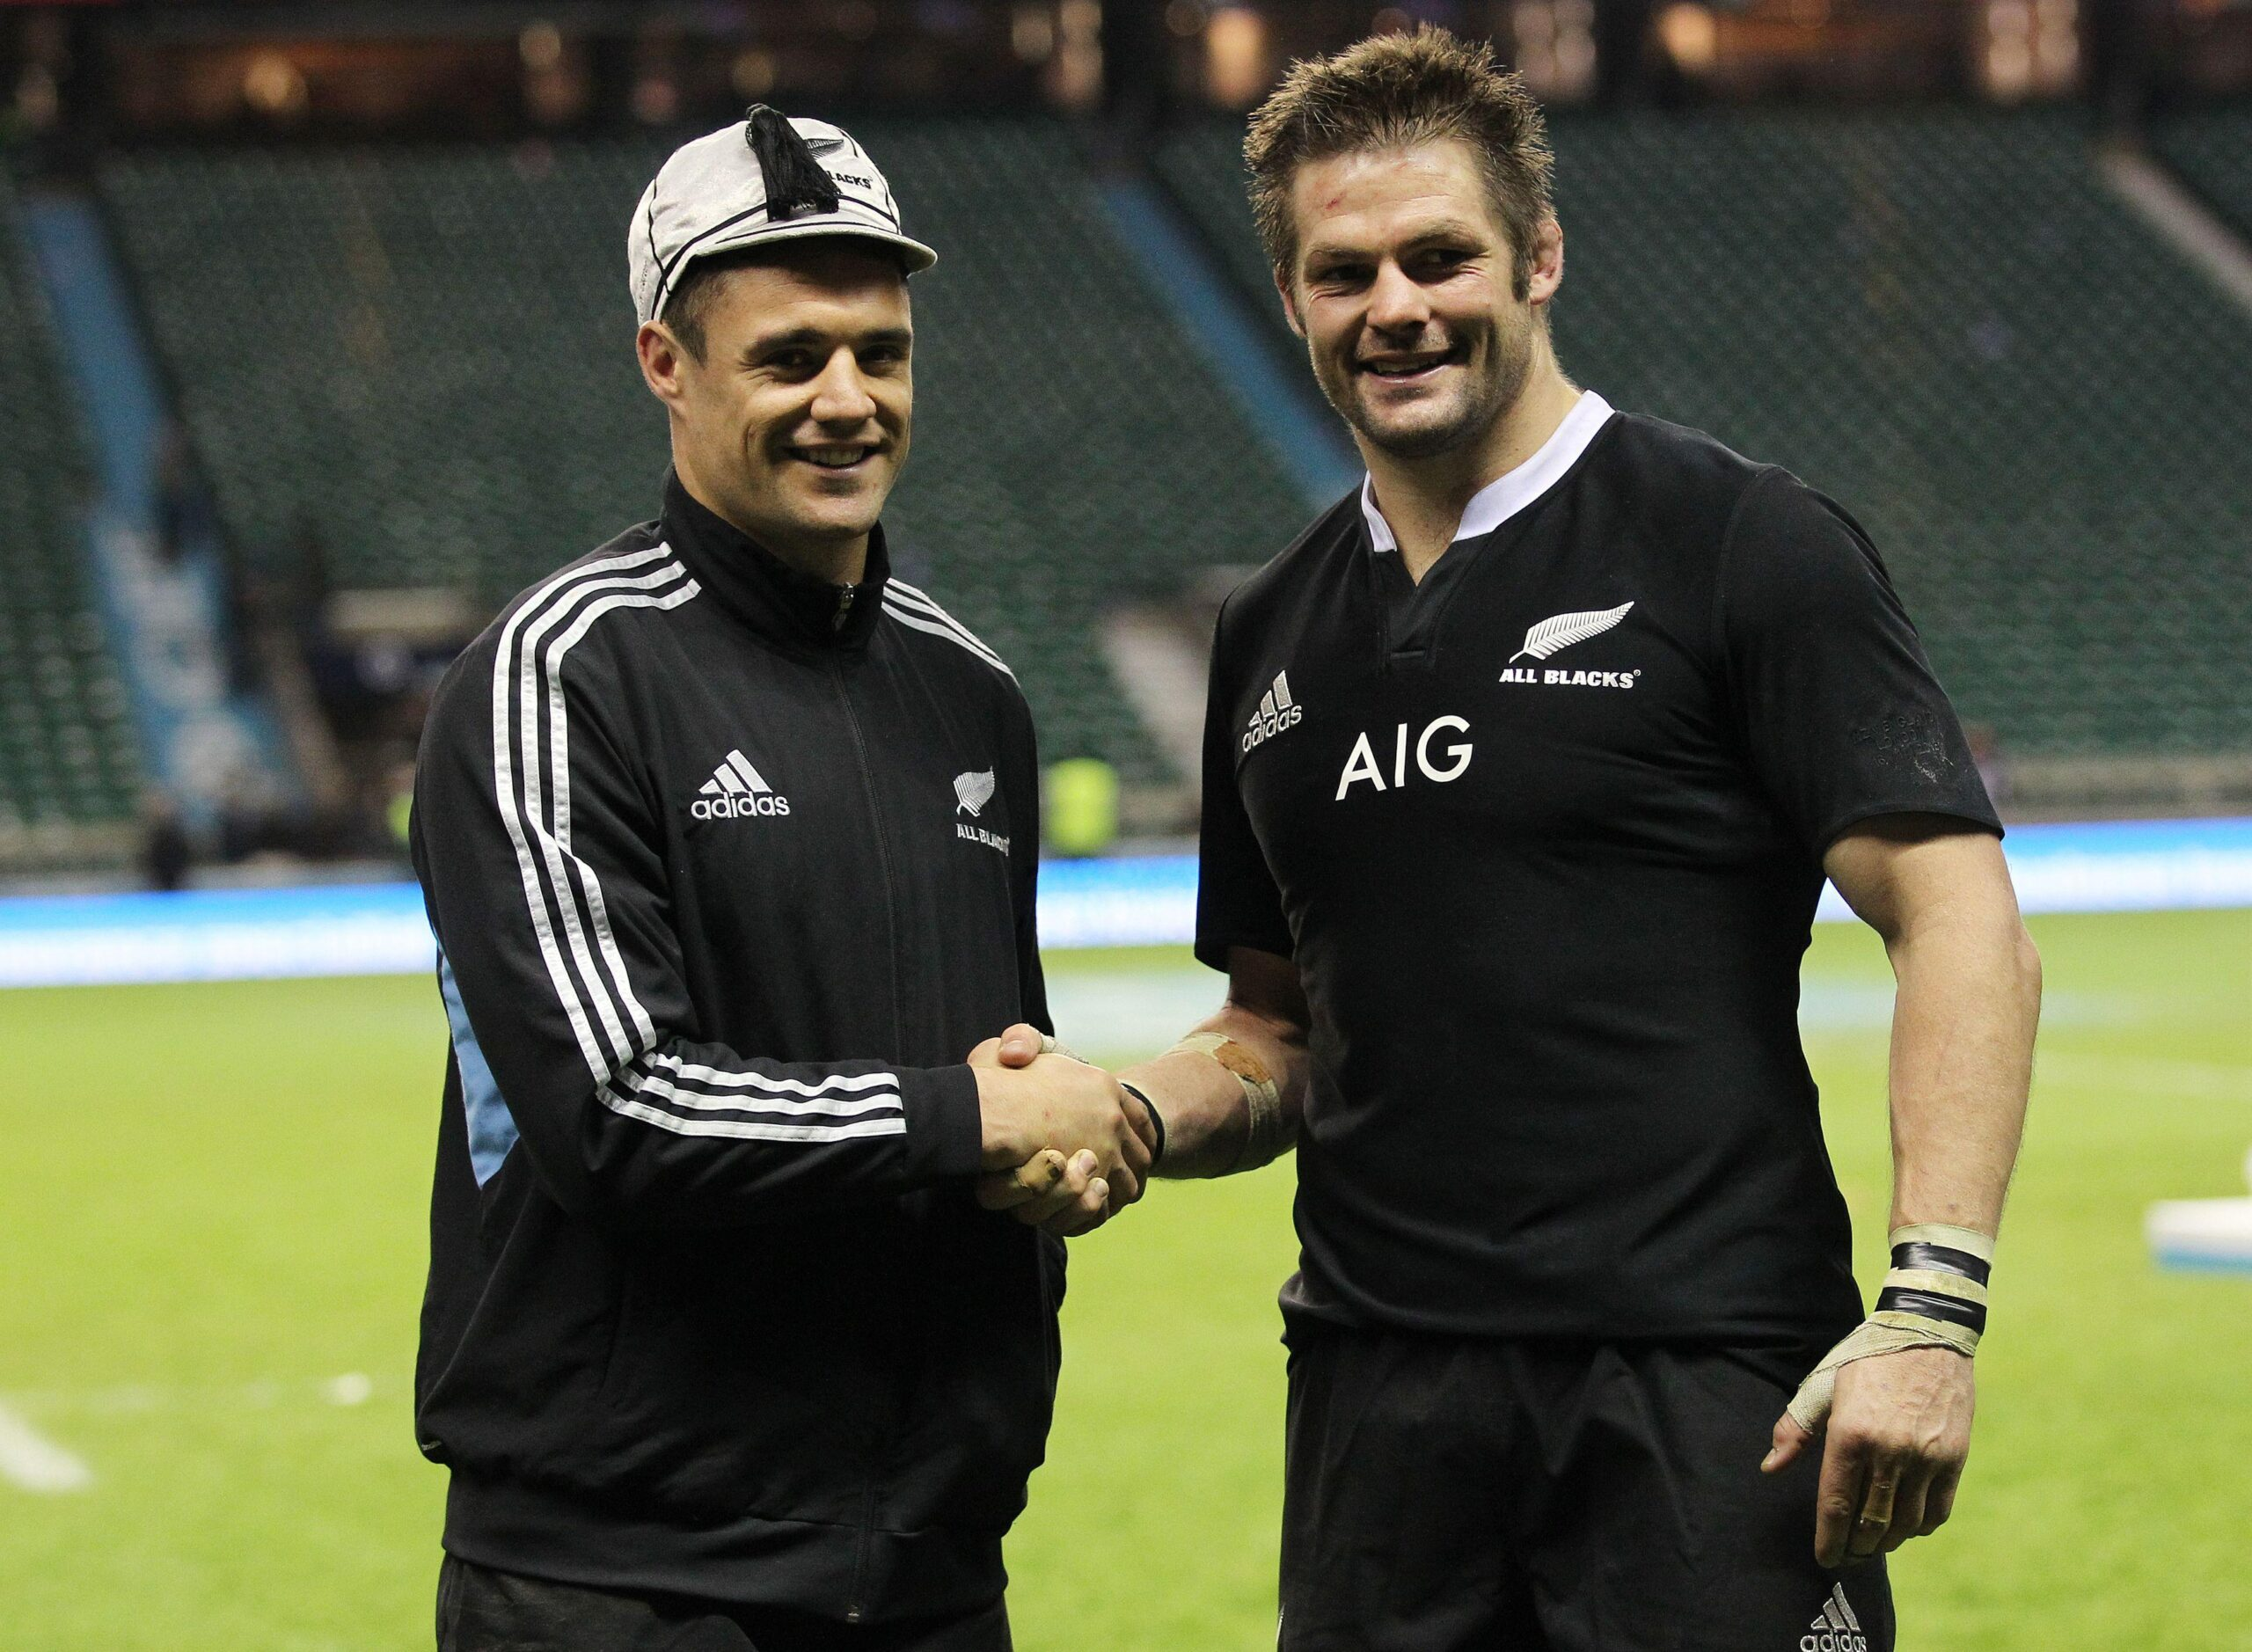 All Black Legend Dan Carter retires from Professional Rugby